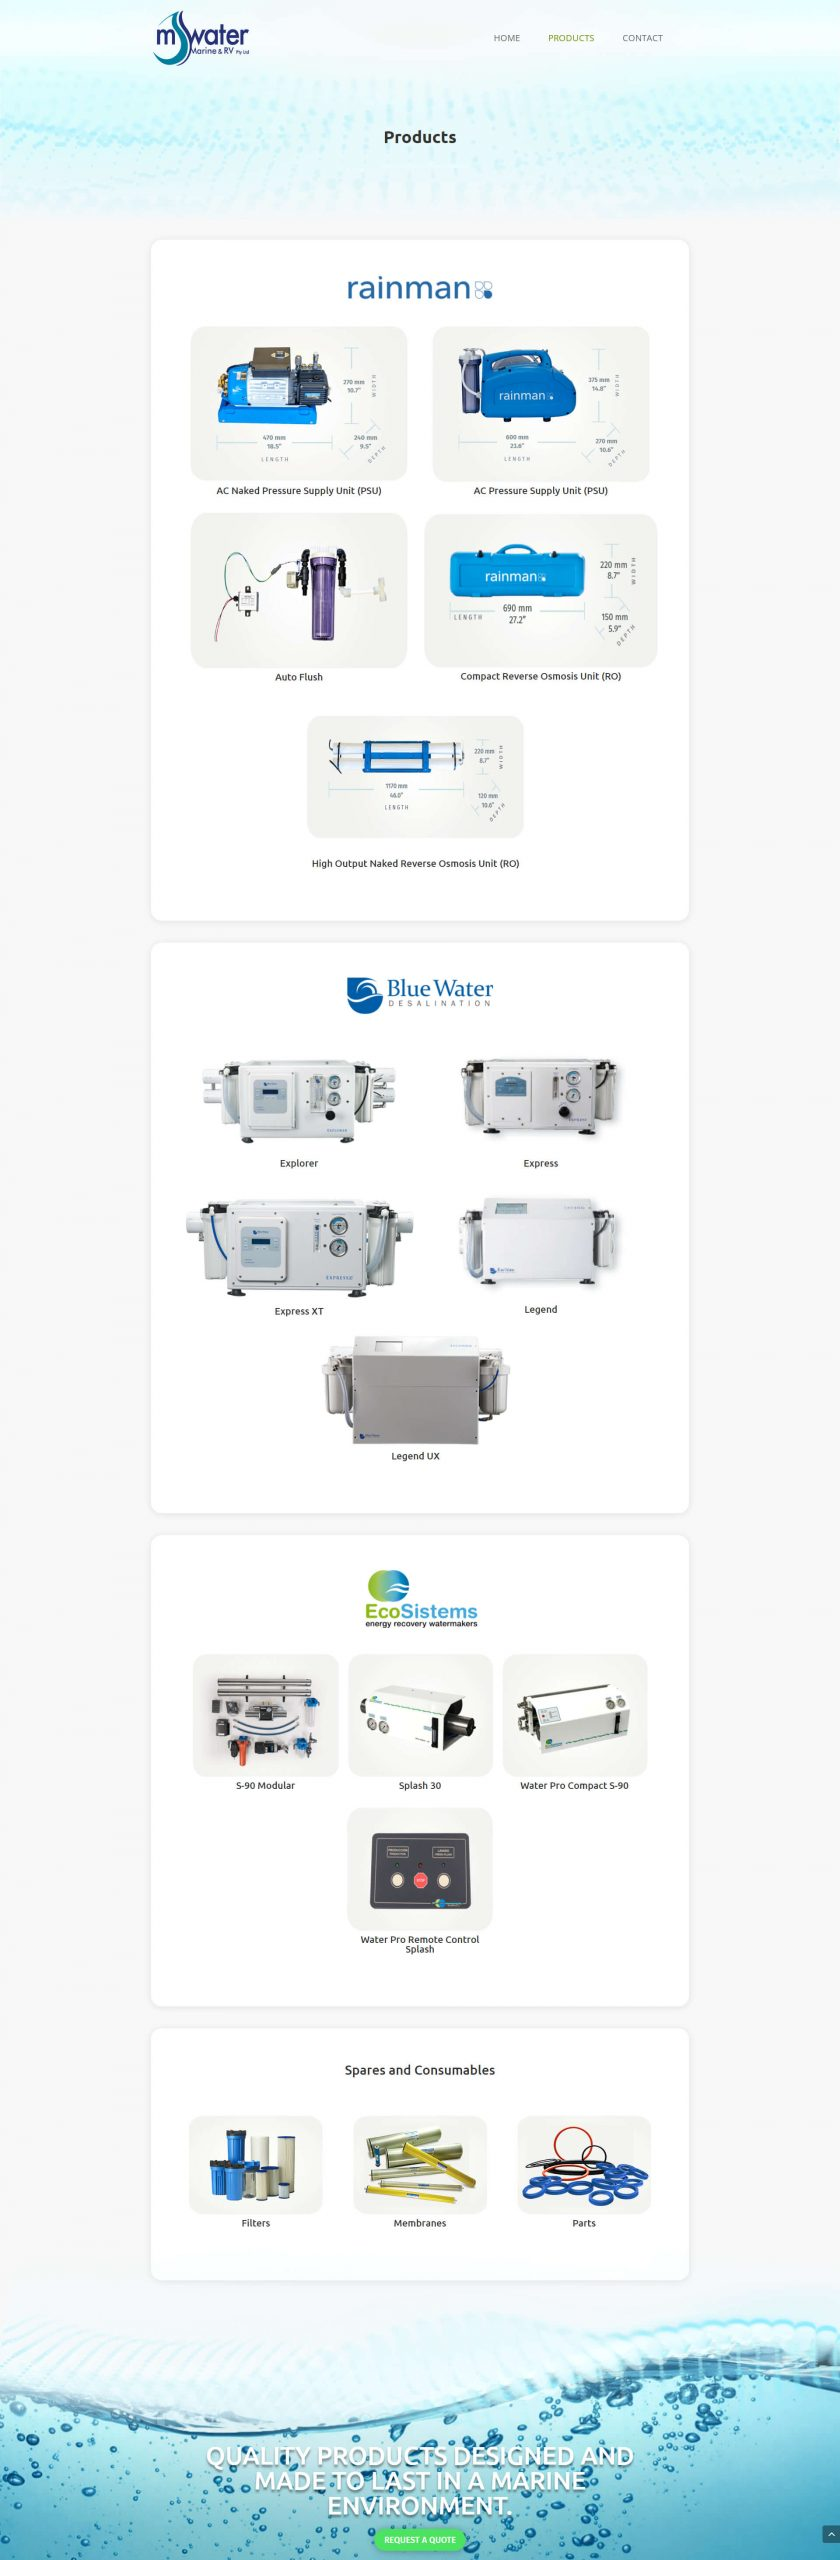 MWater Products